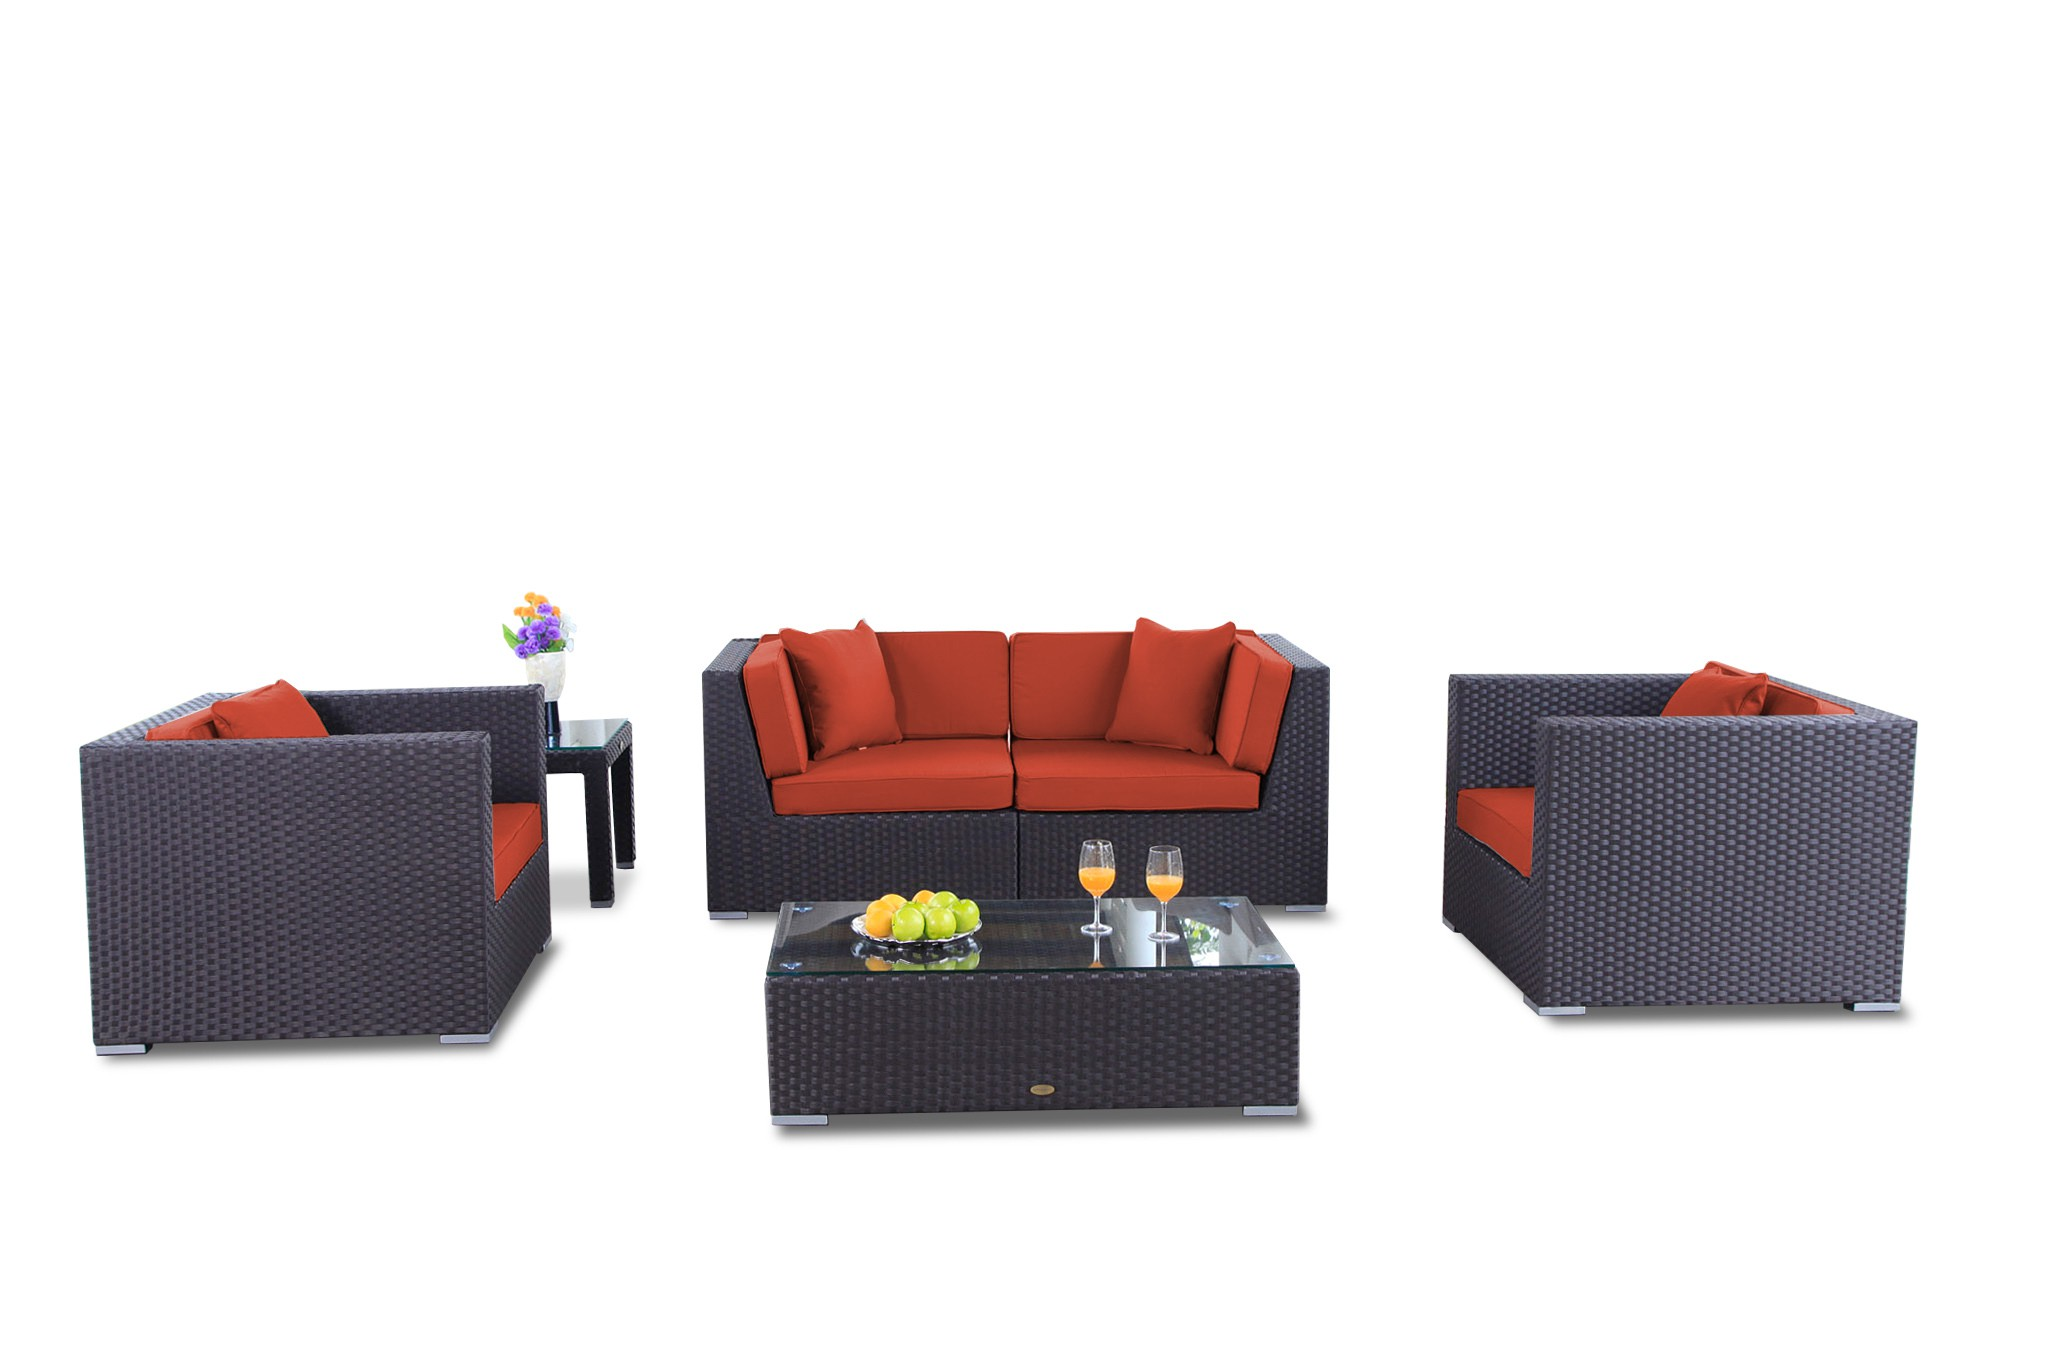 Wunderbar Finest Bilbao Rattan Gartenmbel Set Berzug Orange With Gartenmbel Set Rattan